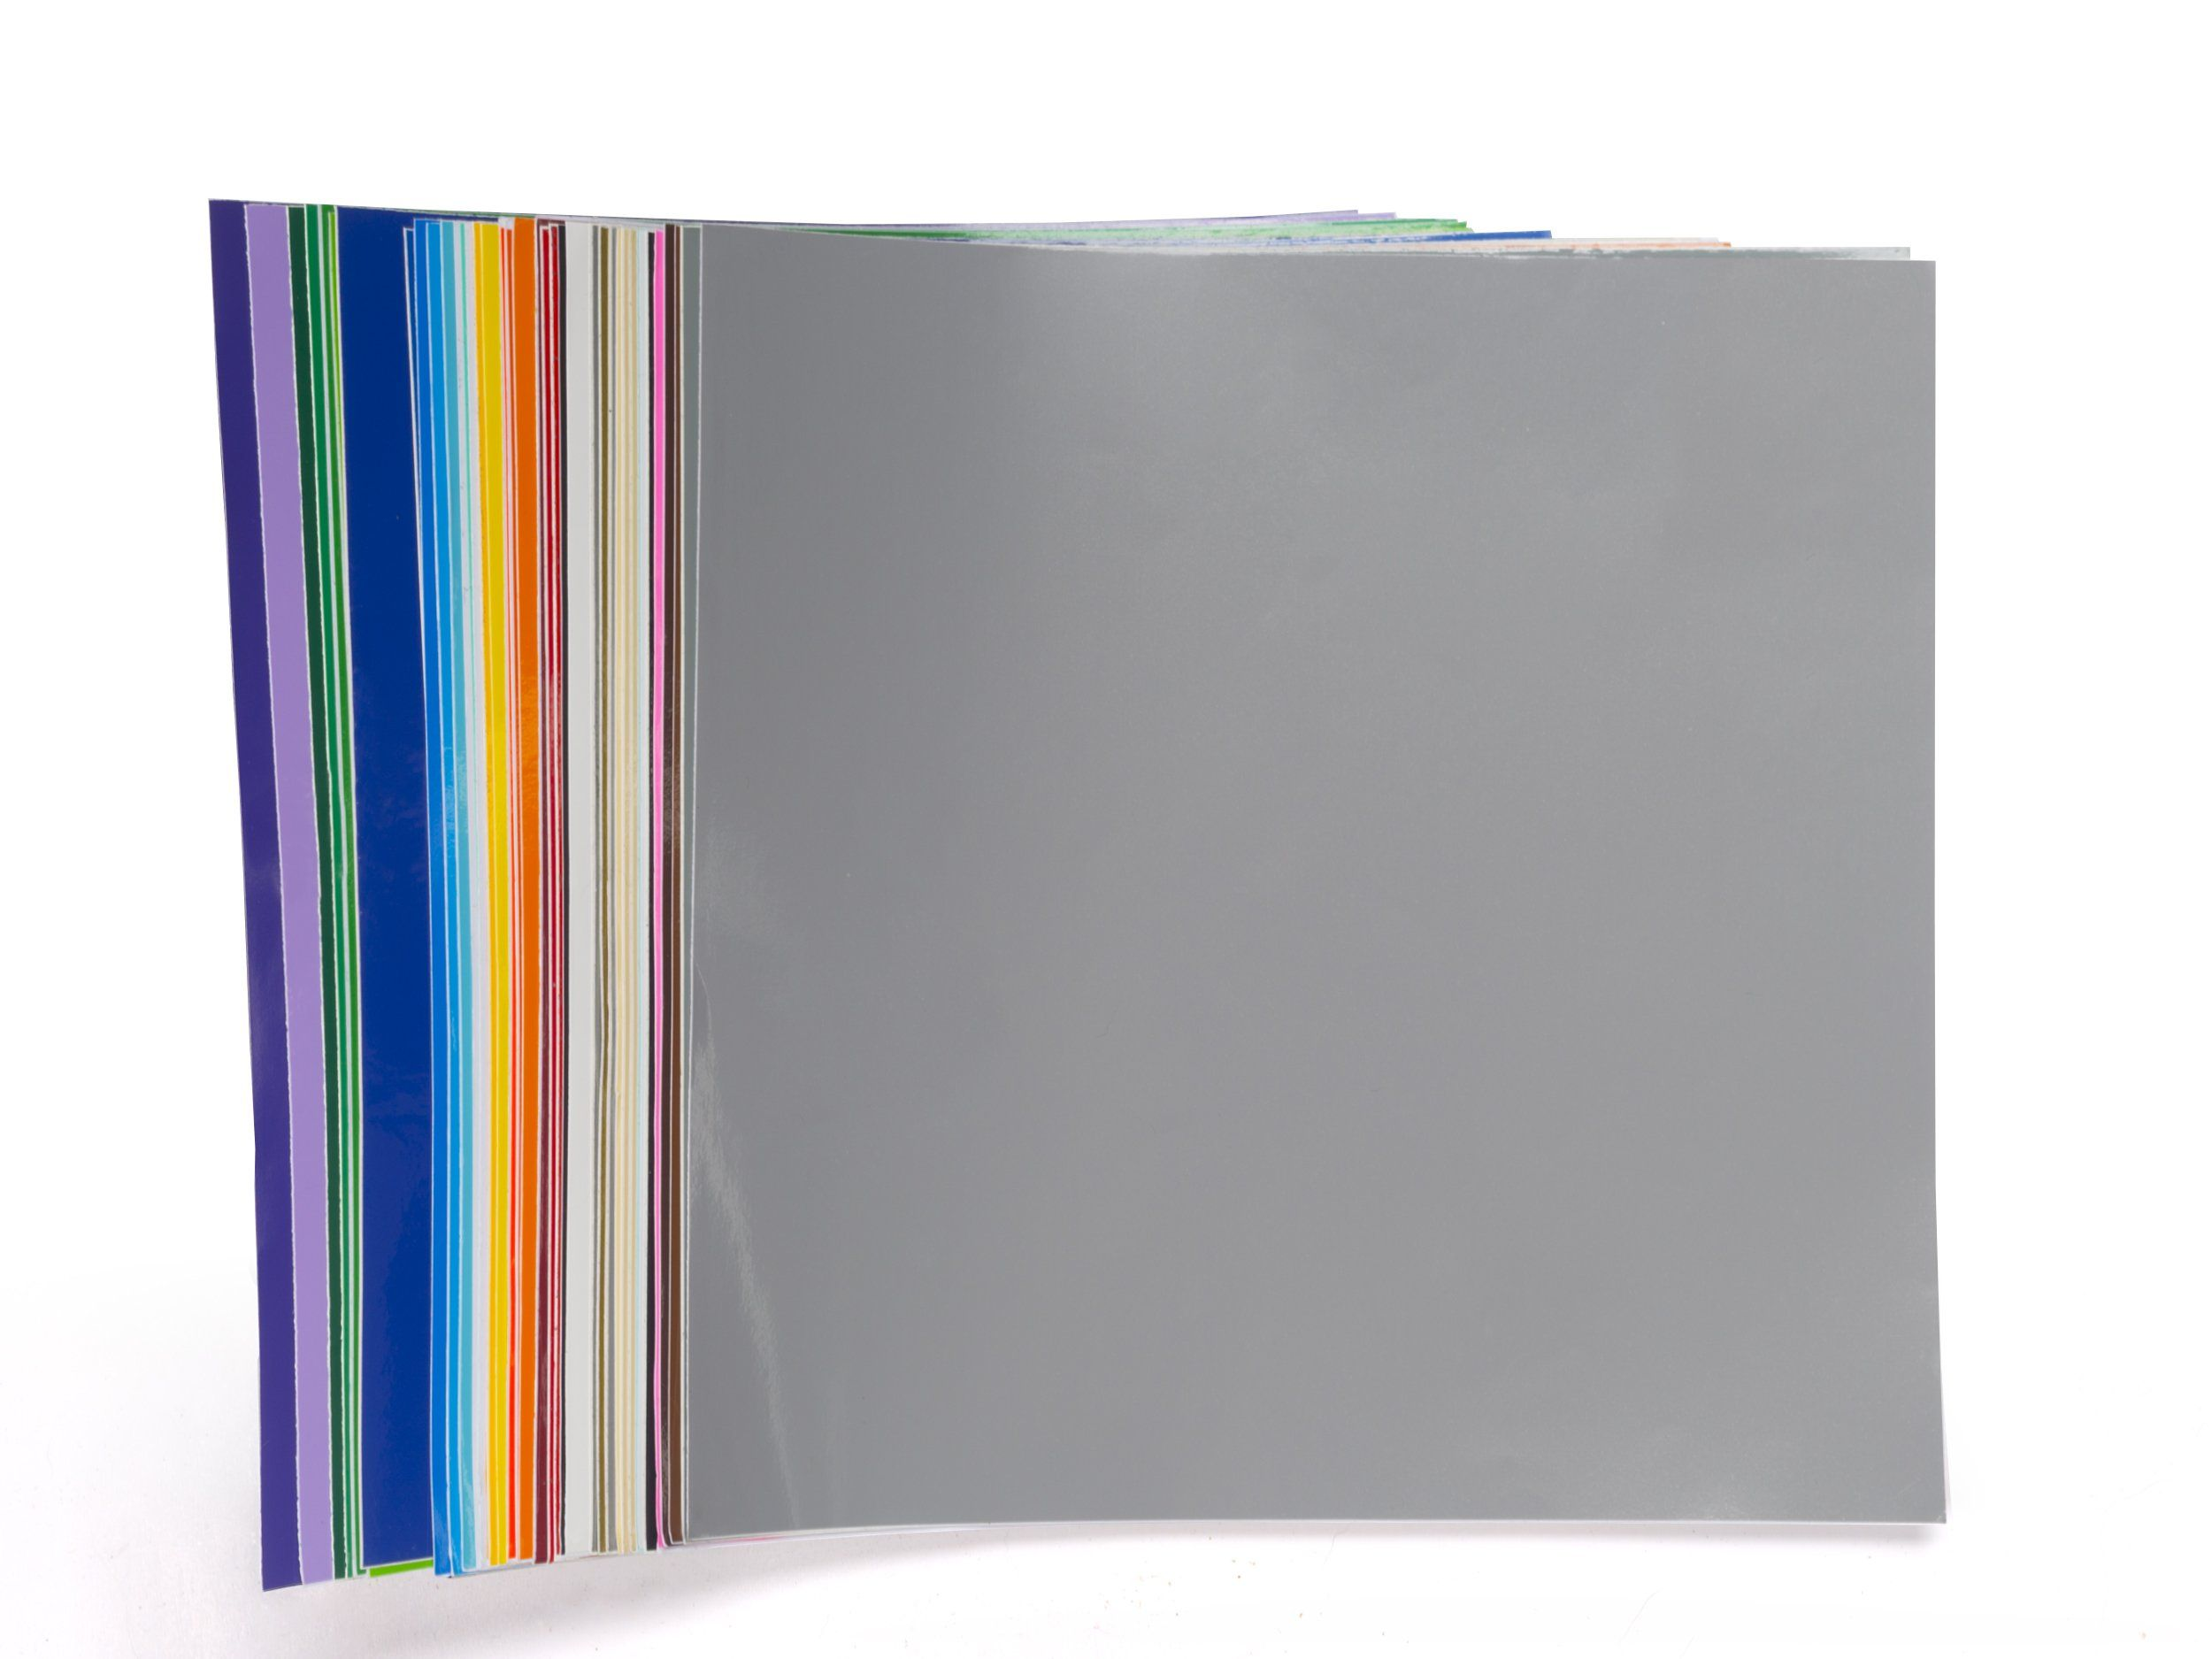 Permanent Adhesive Backed Vinyl Sheets By Ez Craft Usa 12 X 12 40 Sheets Assorted Colors Works With Cricut And Other Cu Vinyl Sheets Vinyl Adhesive Vinyl